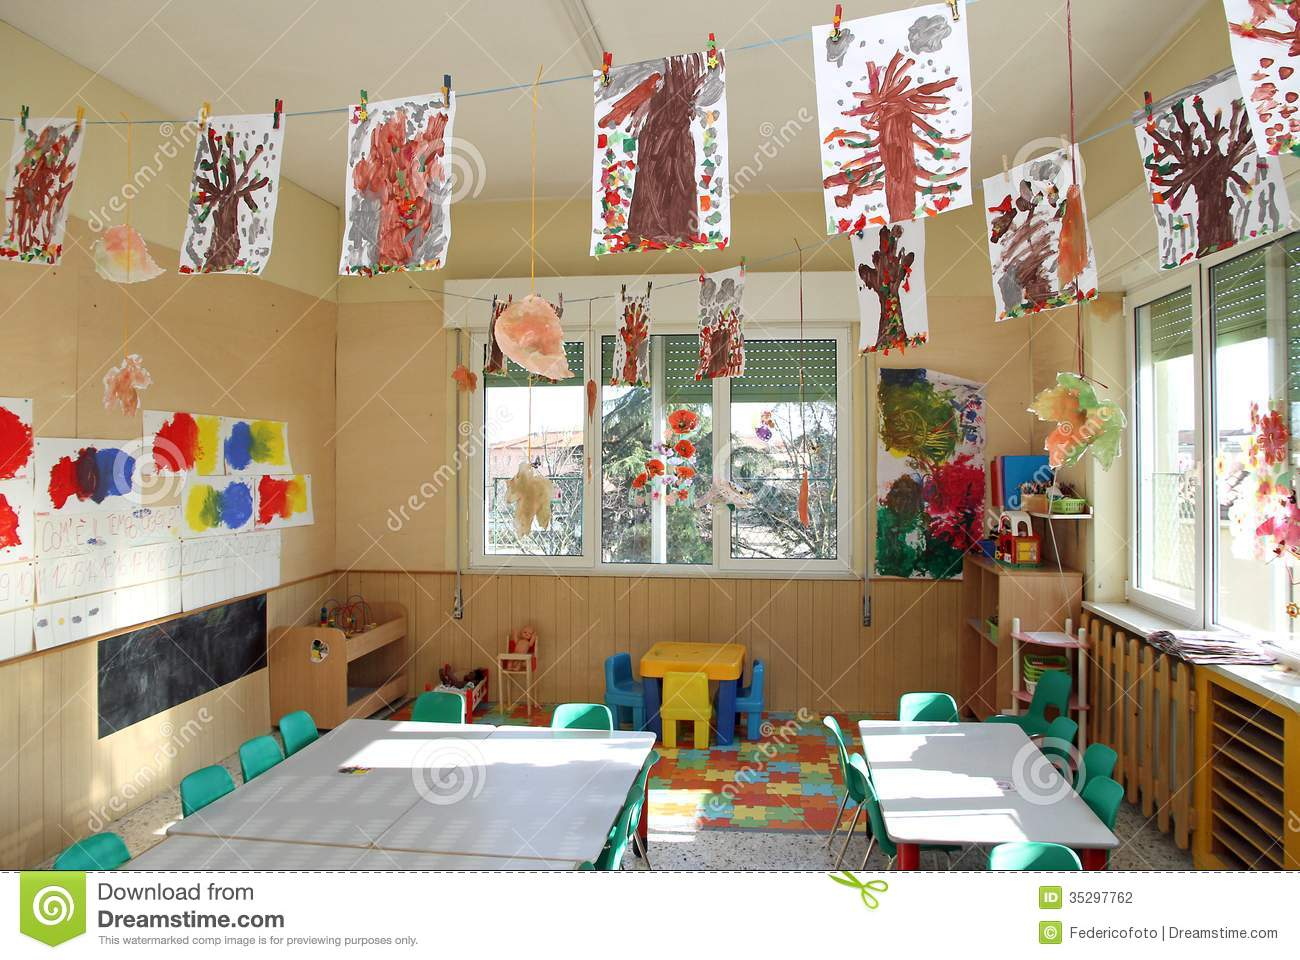 Nursery Class Of Children With Many Drawings Trees